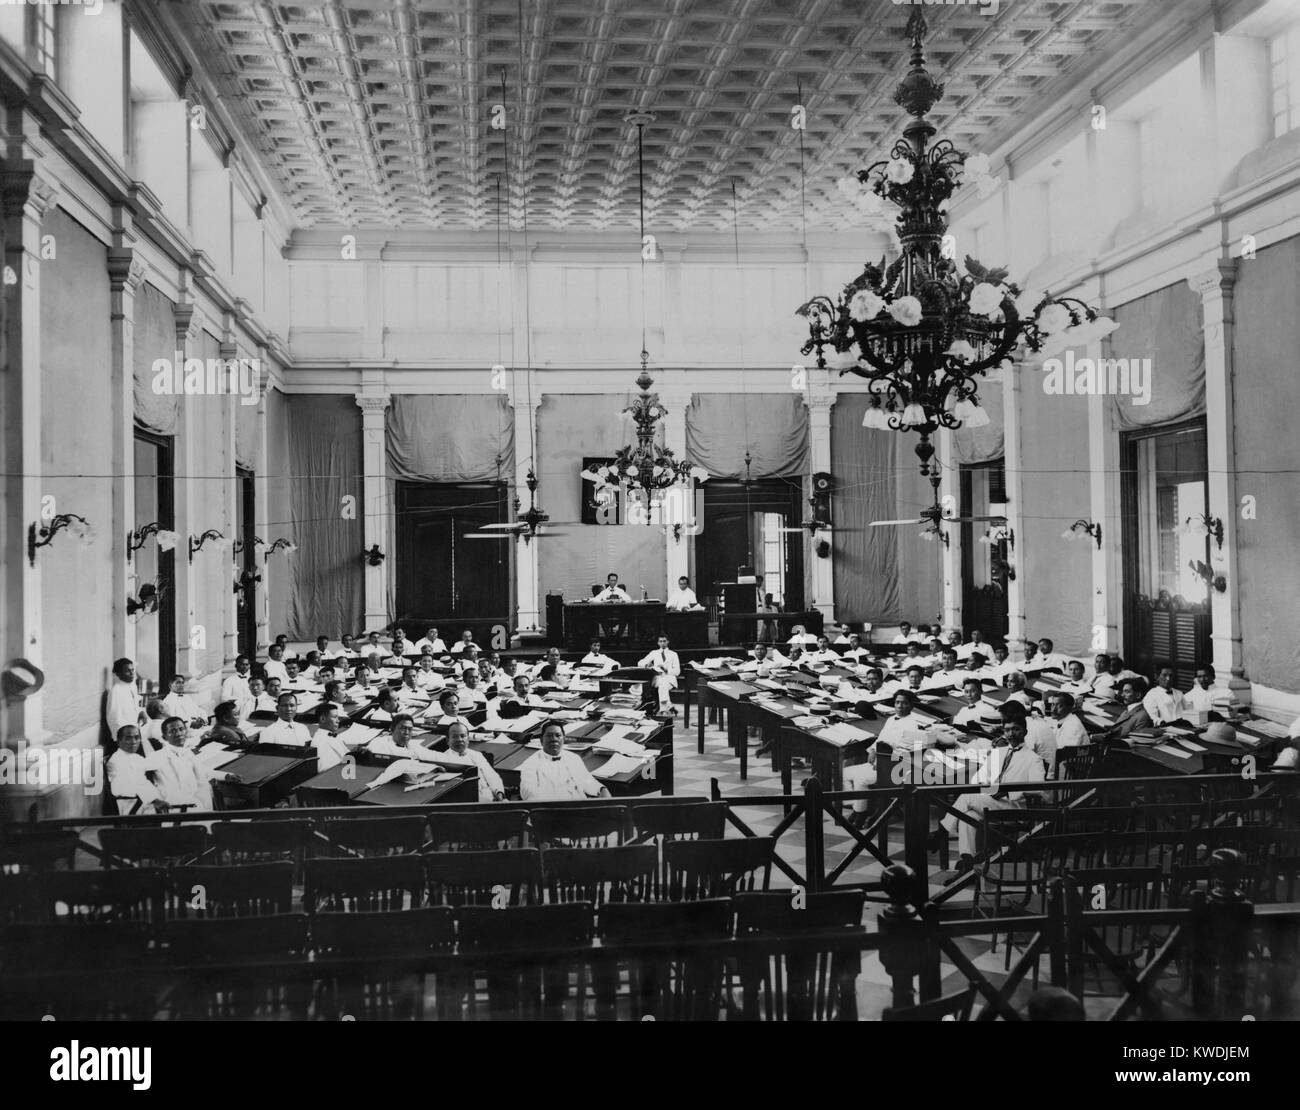 The Philippines Assembly in session, c. 1907. The popularly elected legislature was established by the US Congress - Stock Image